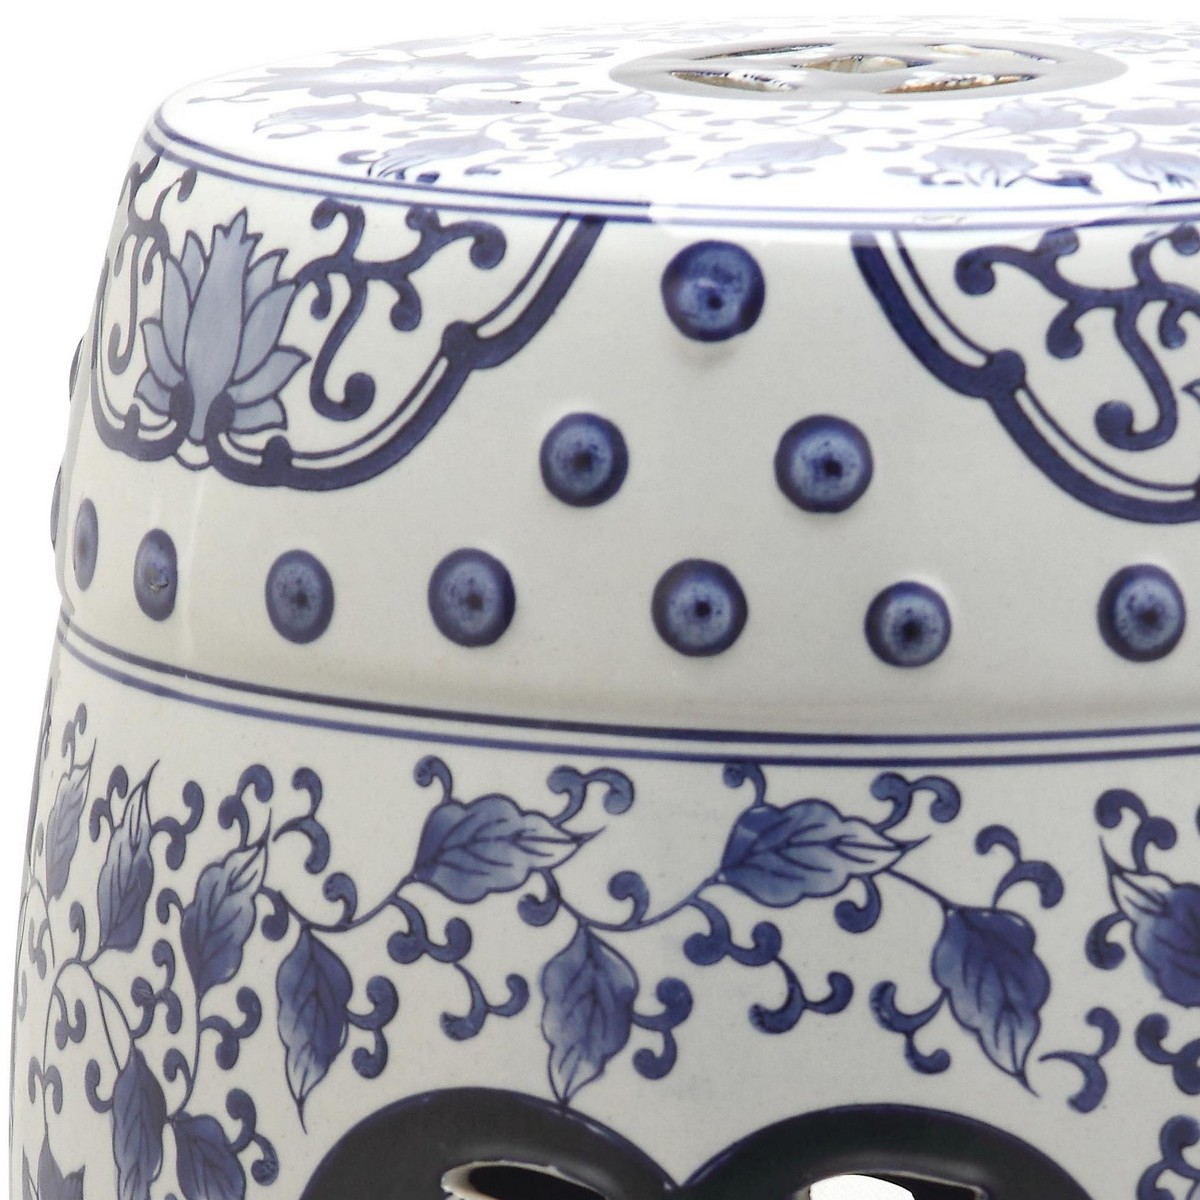 Kidu0027s Garden Stools · Stools. SIGN UP FOR SAFAVIEH EMAILS